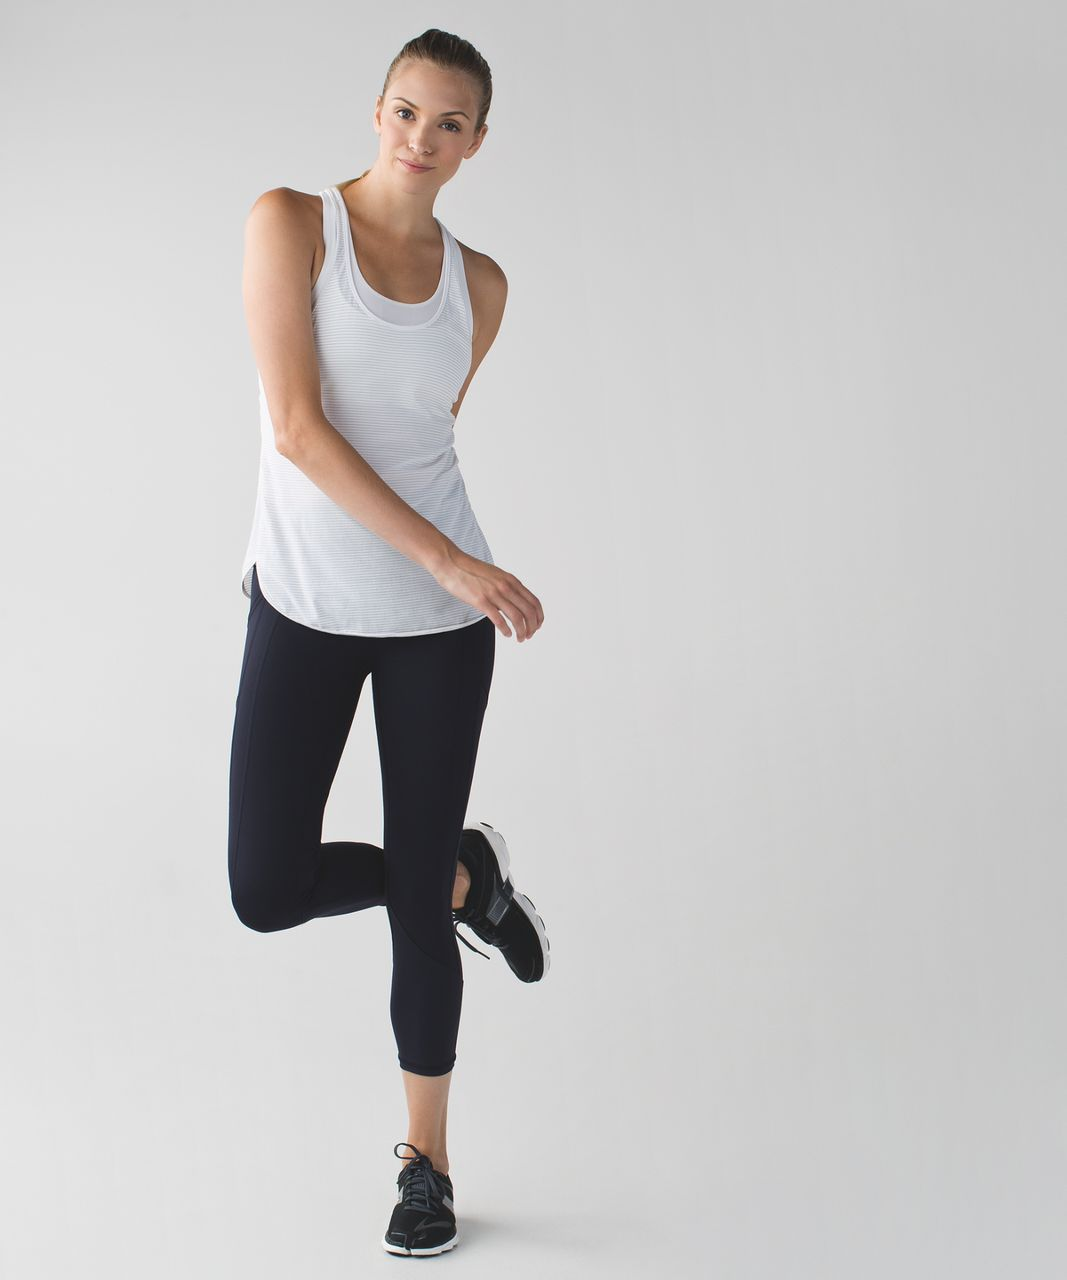 Lululemon All The Right Places Crop - Naval Blue / Painted Animal Menthol Black